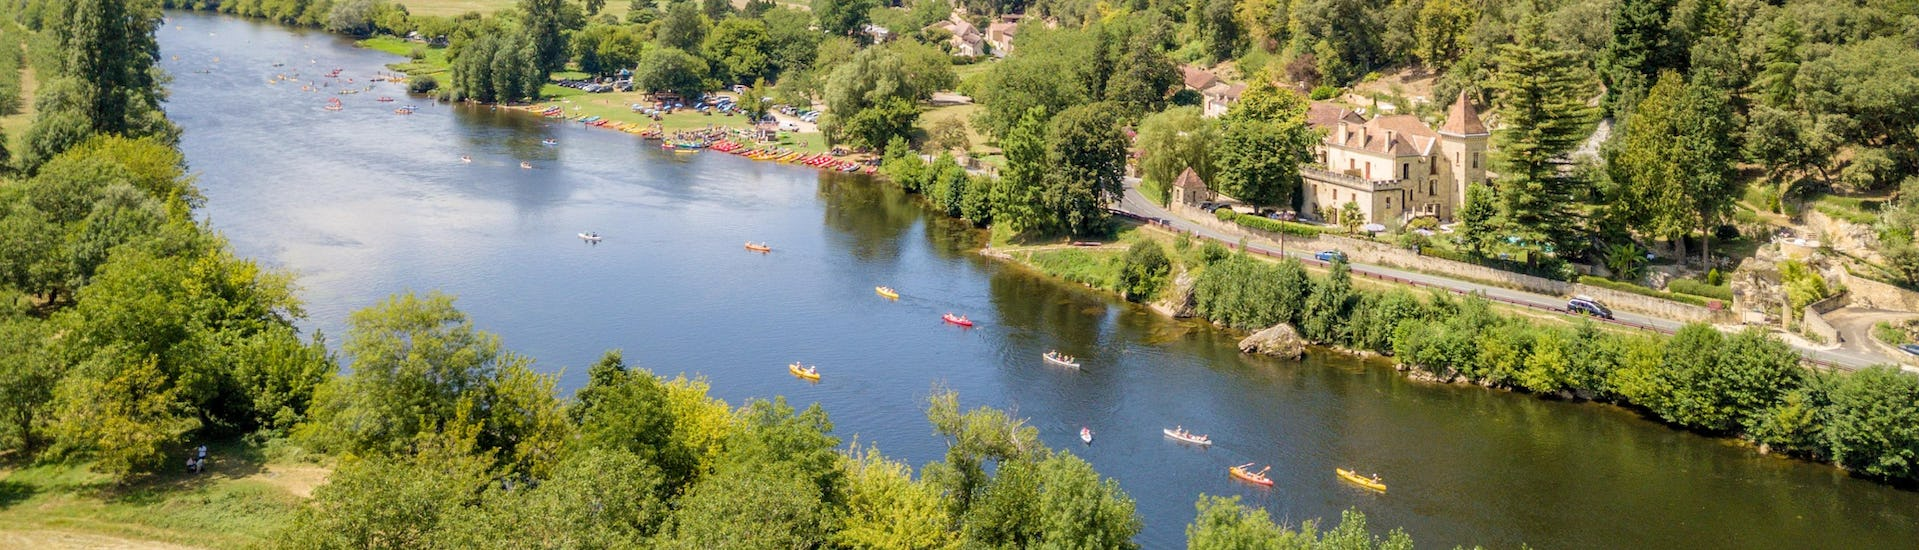 Aerial view of the Dordogne river in the heart of Périgord, one of the most beautiful regions in France for canoeing.